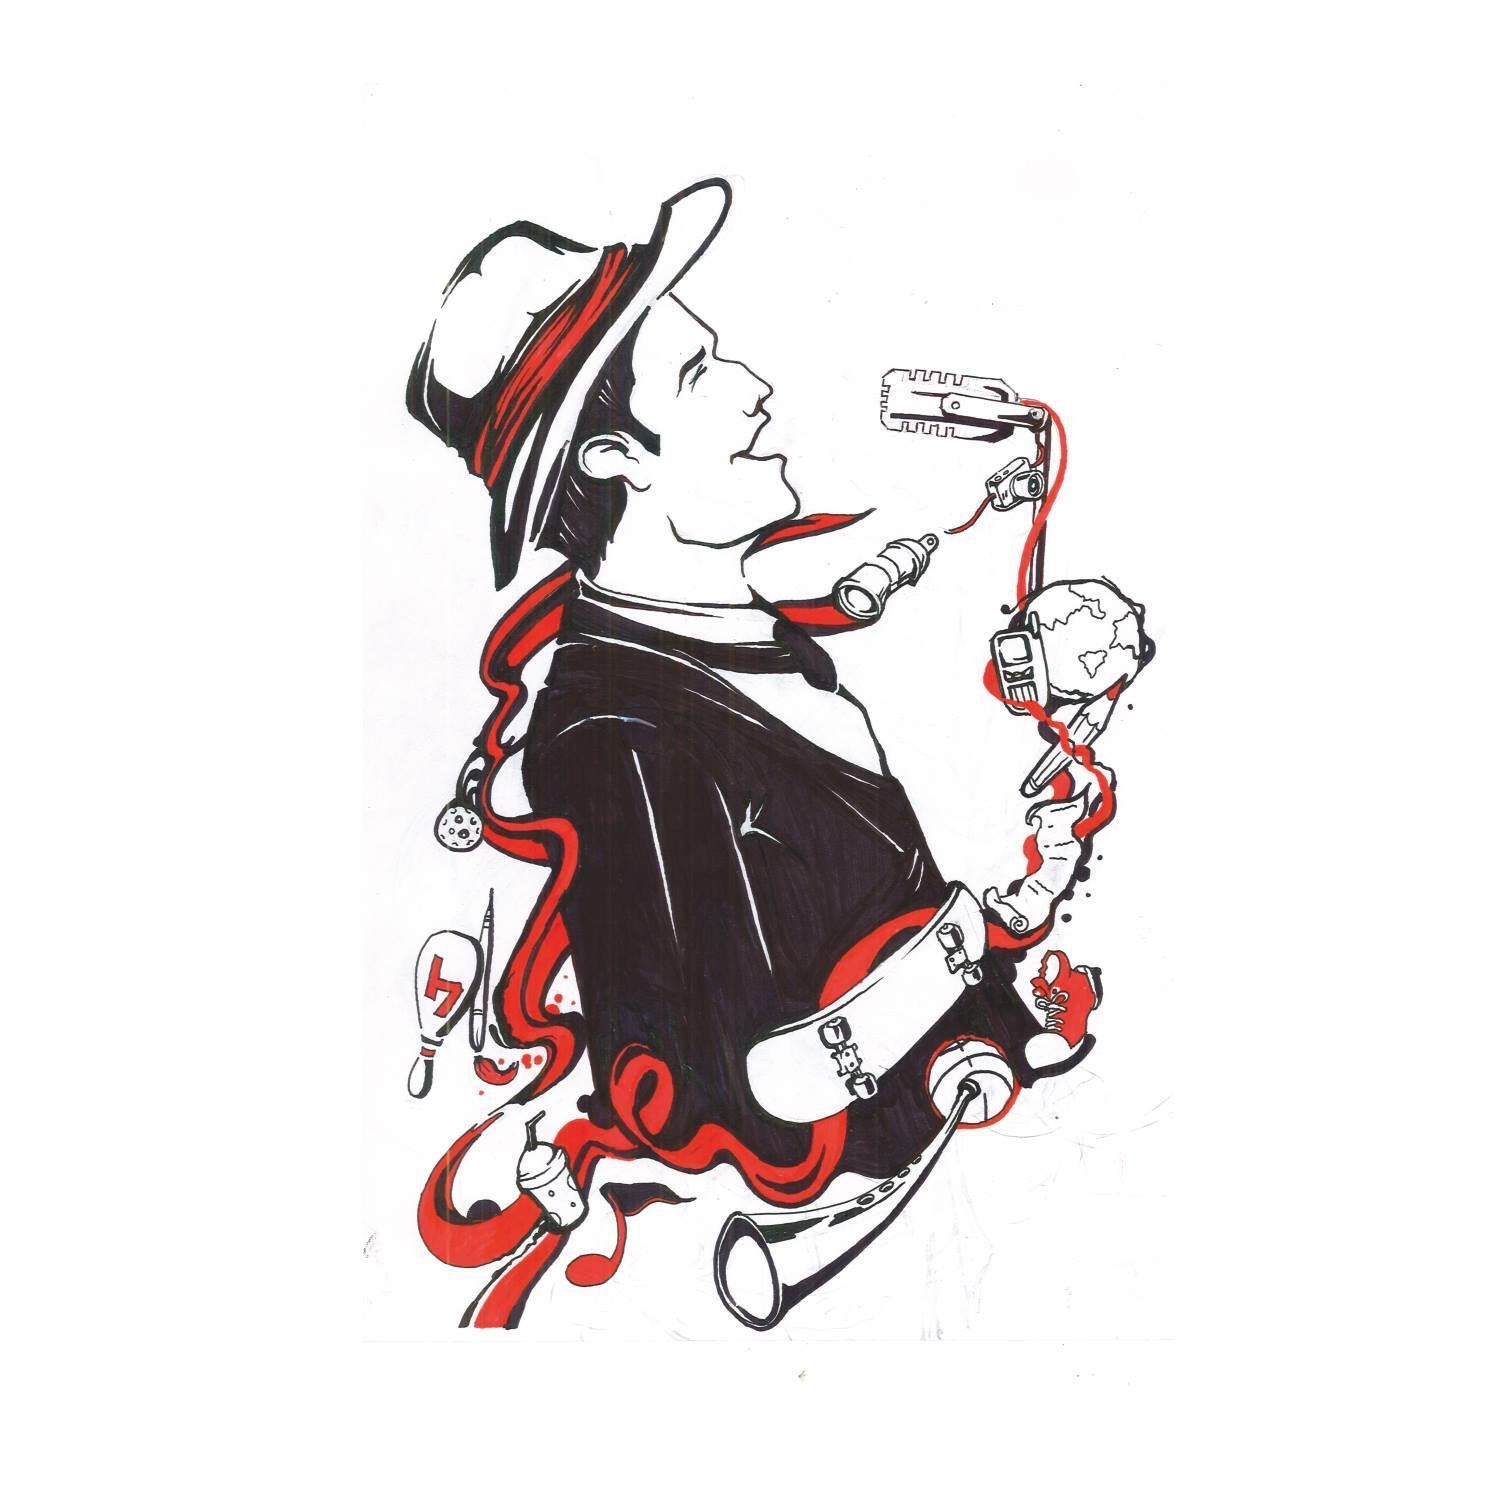 Mr. Smoking Design